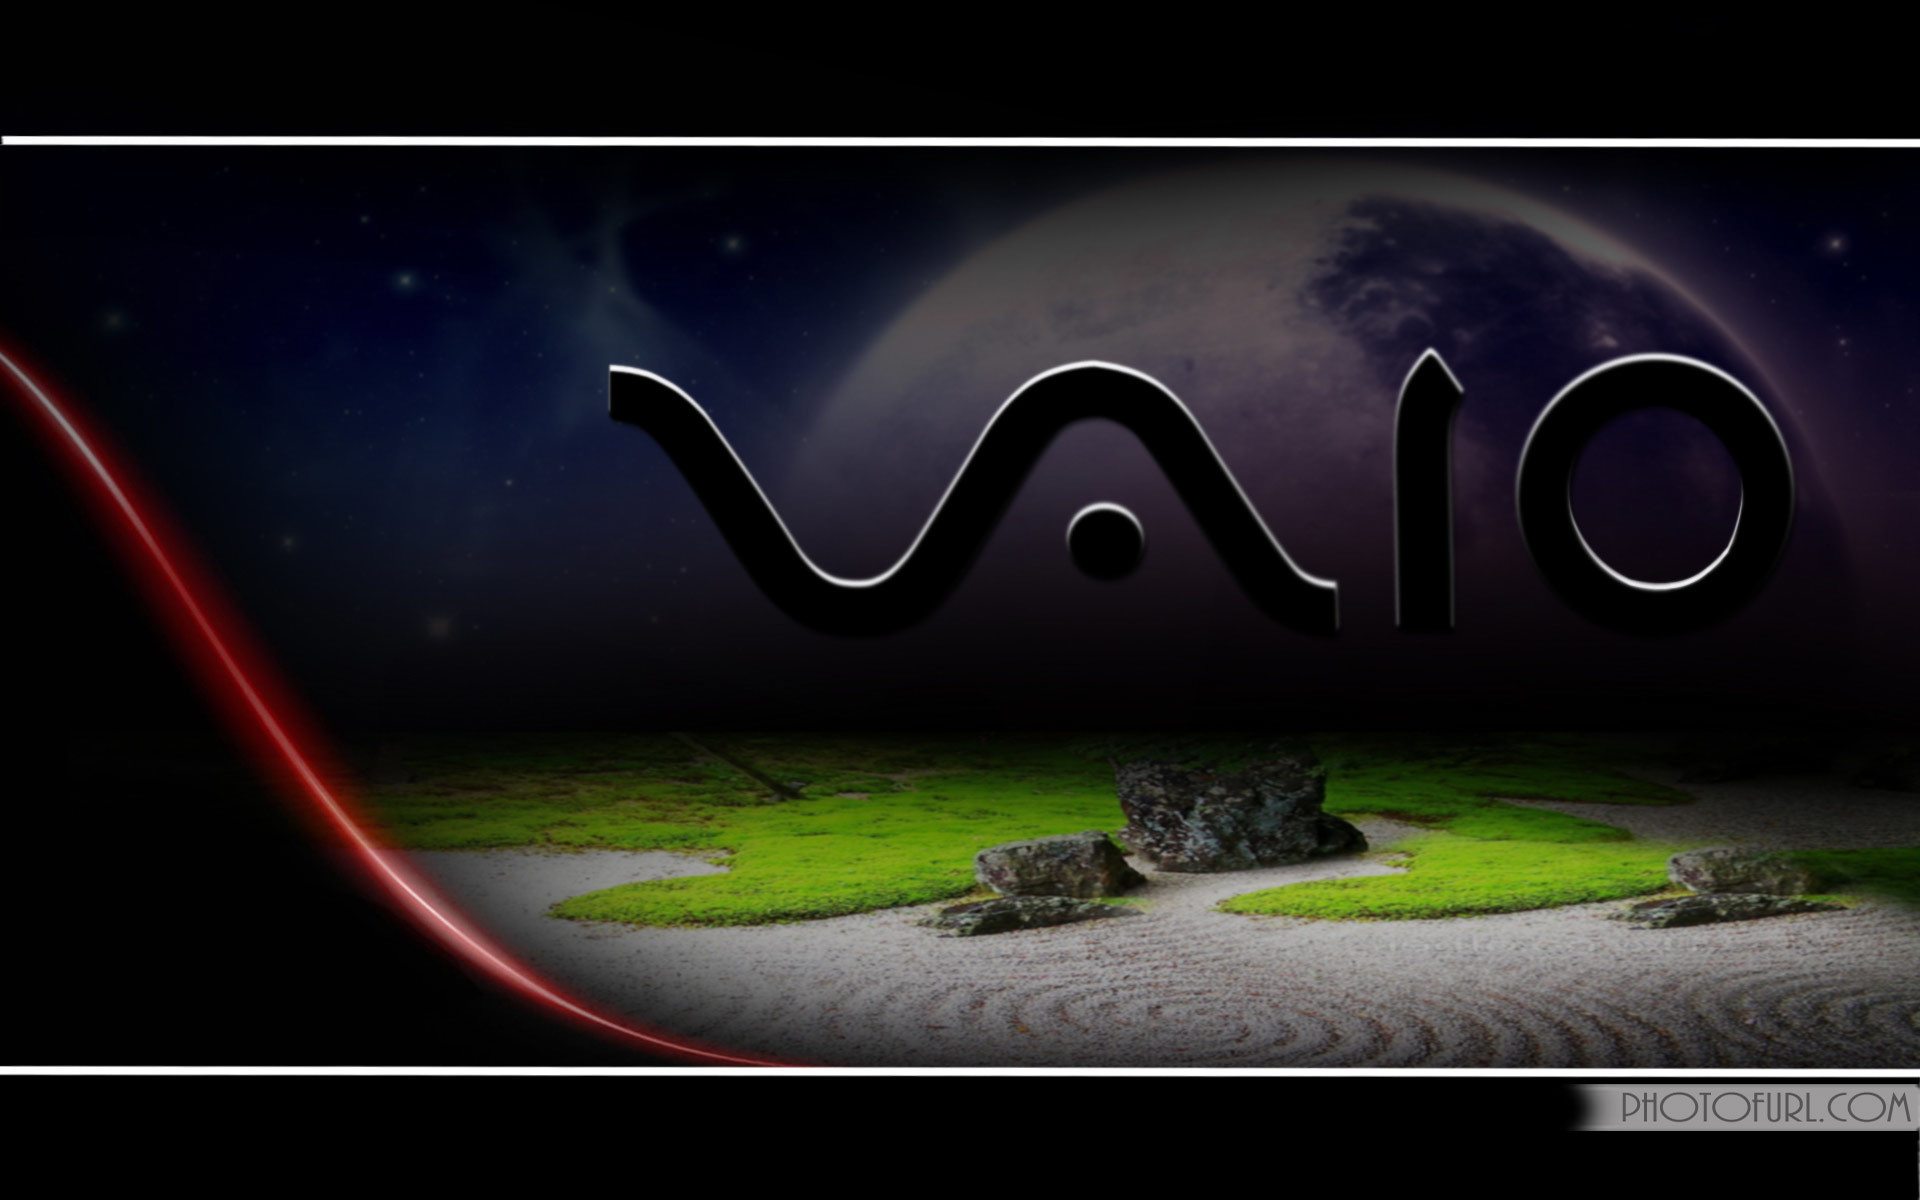 Vaio Wall Paper Black: Sony Vaio Wallpapers (53+ Images